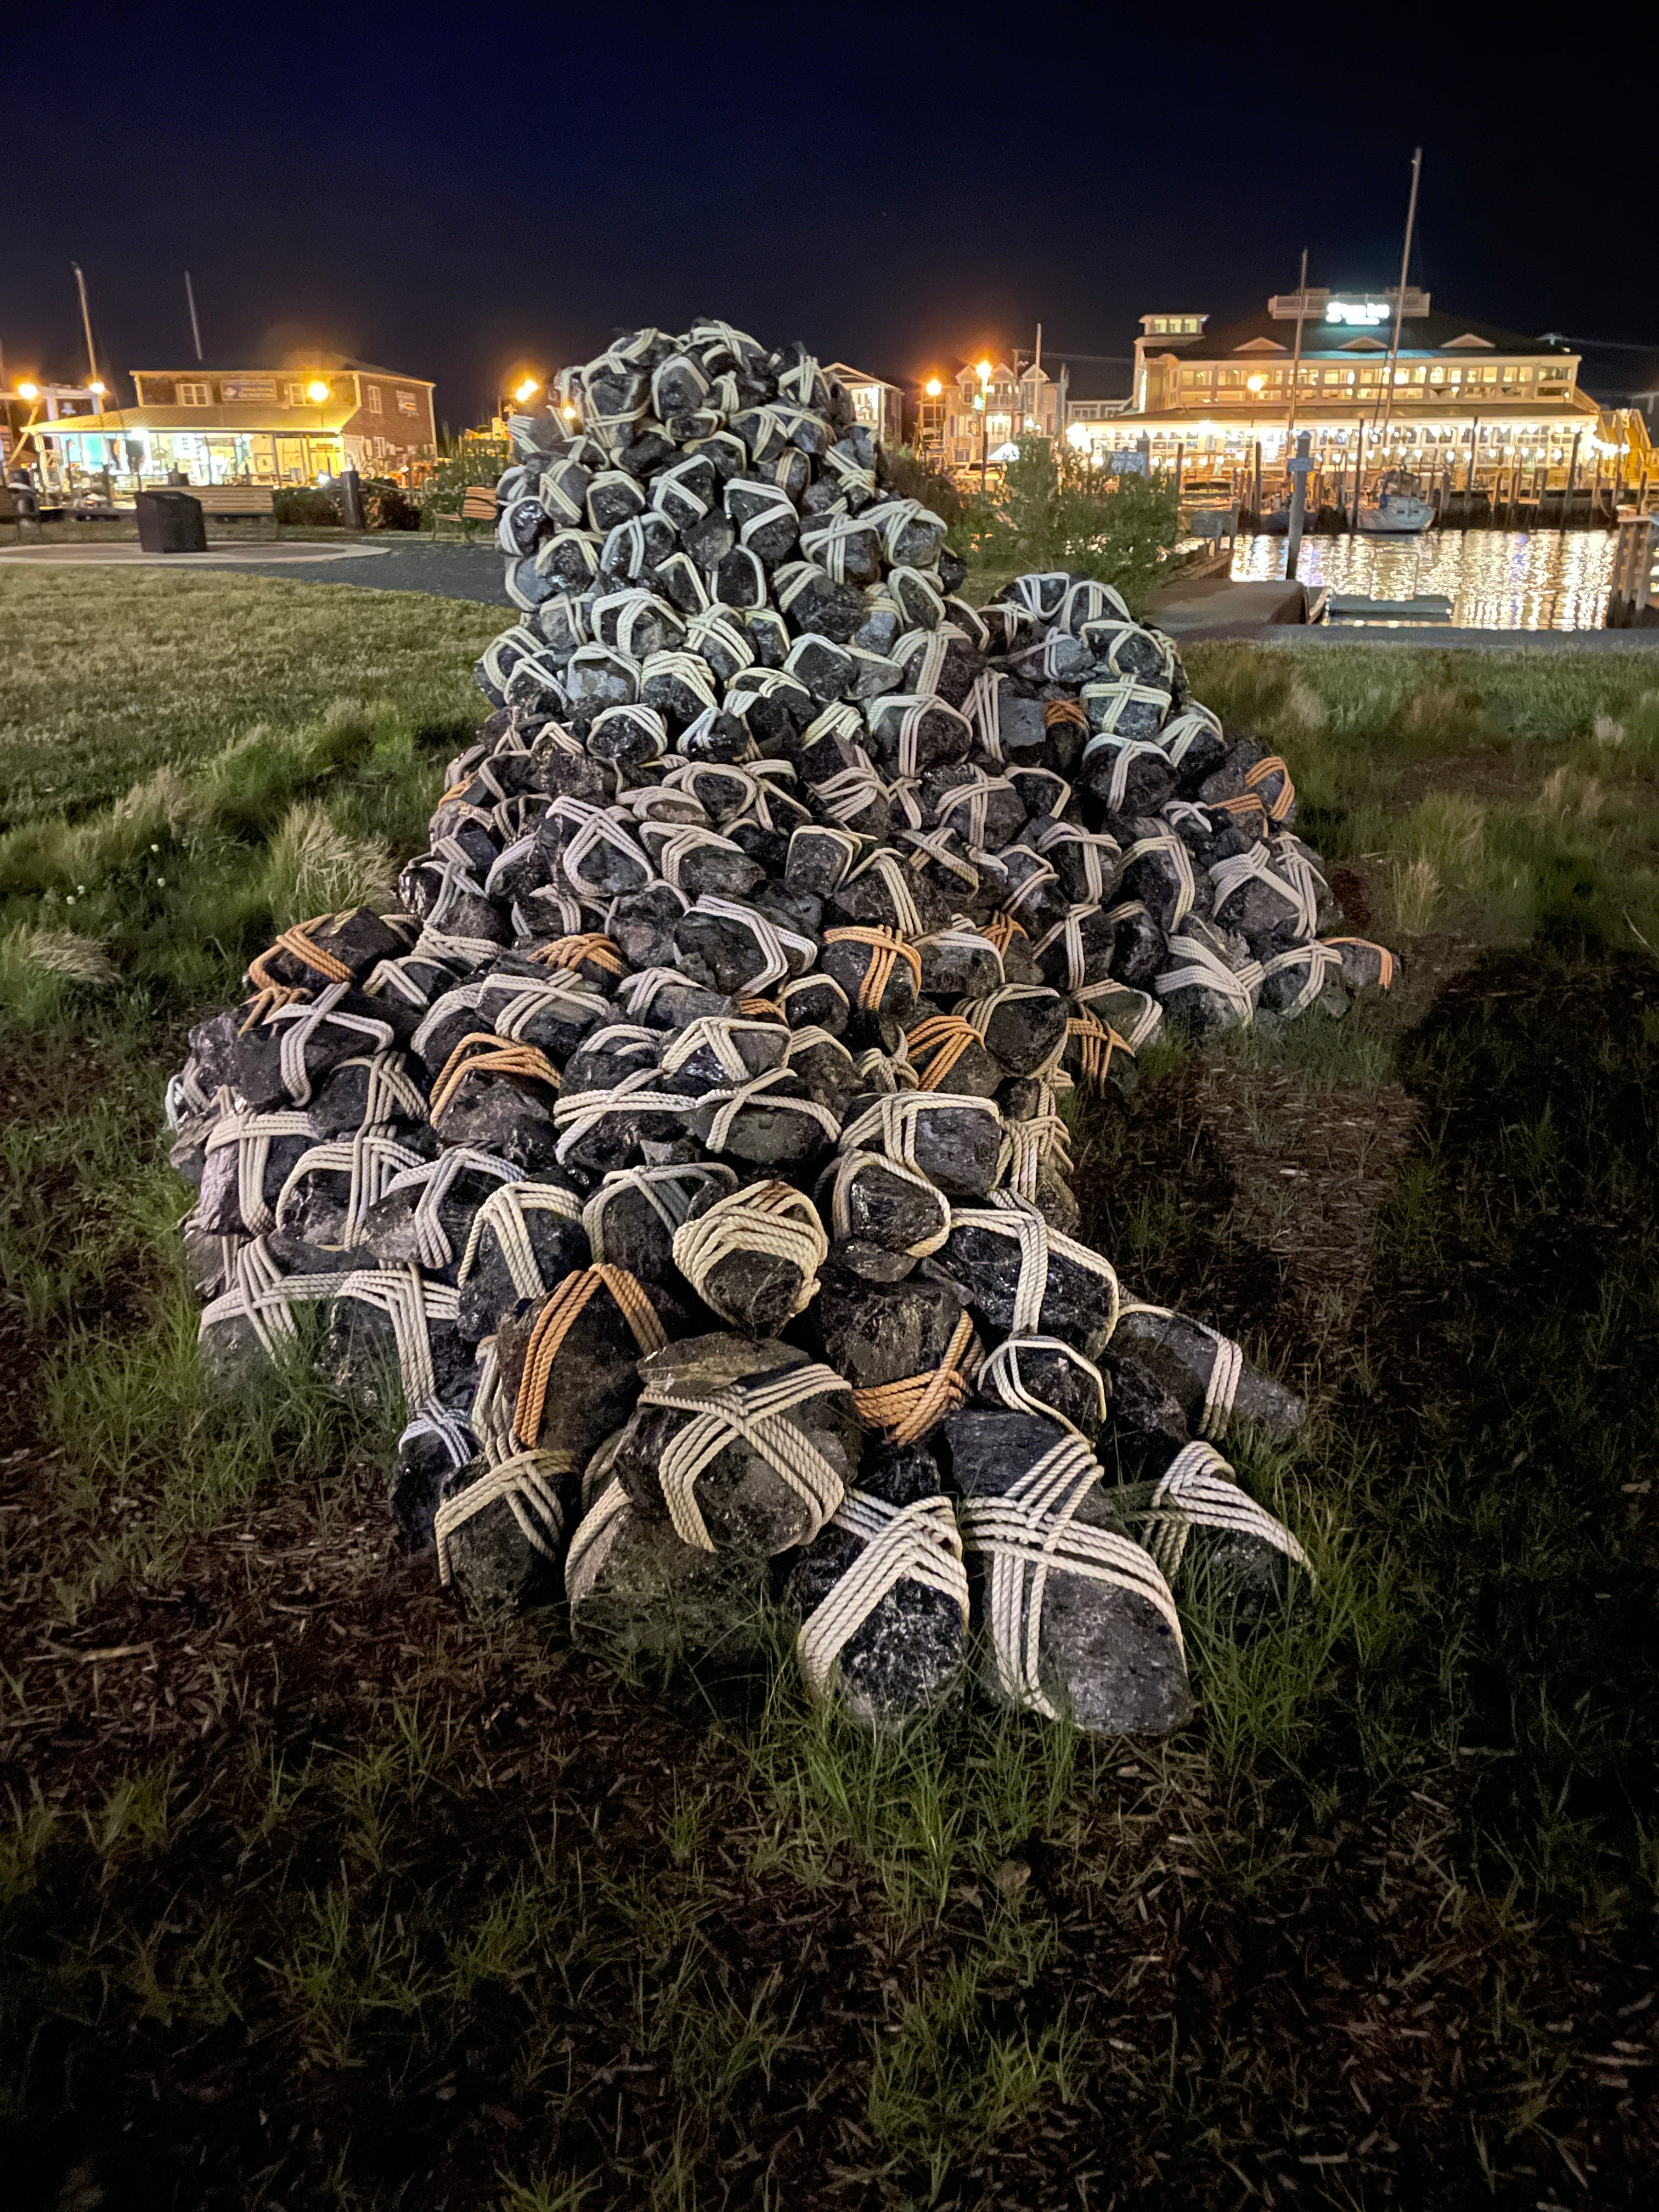 Lewes hopes to become public art destination. Where you can see new installation